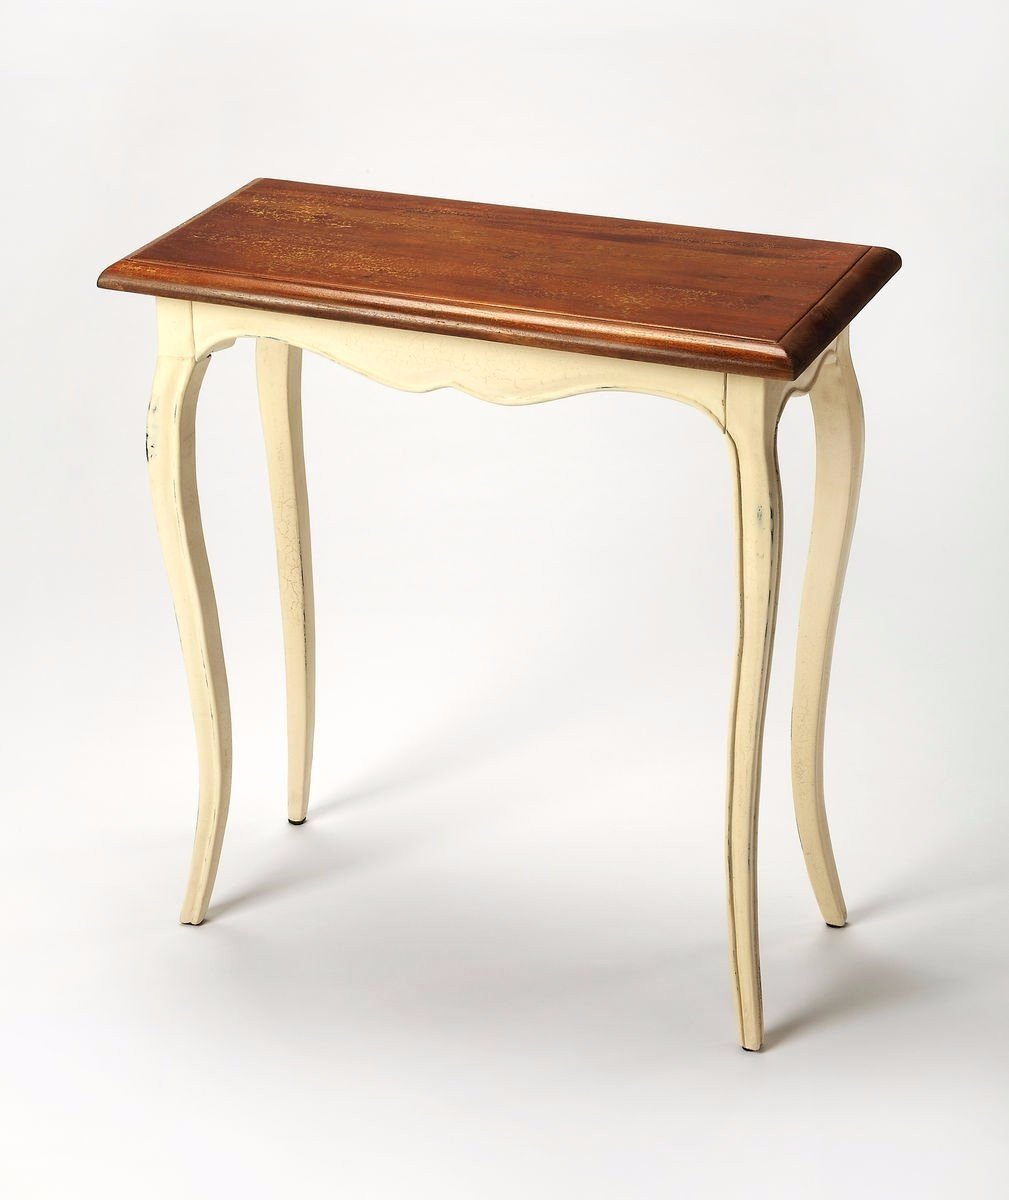 Ambiant Traditional CONSOLE TABLE Beige